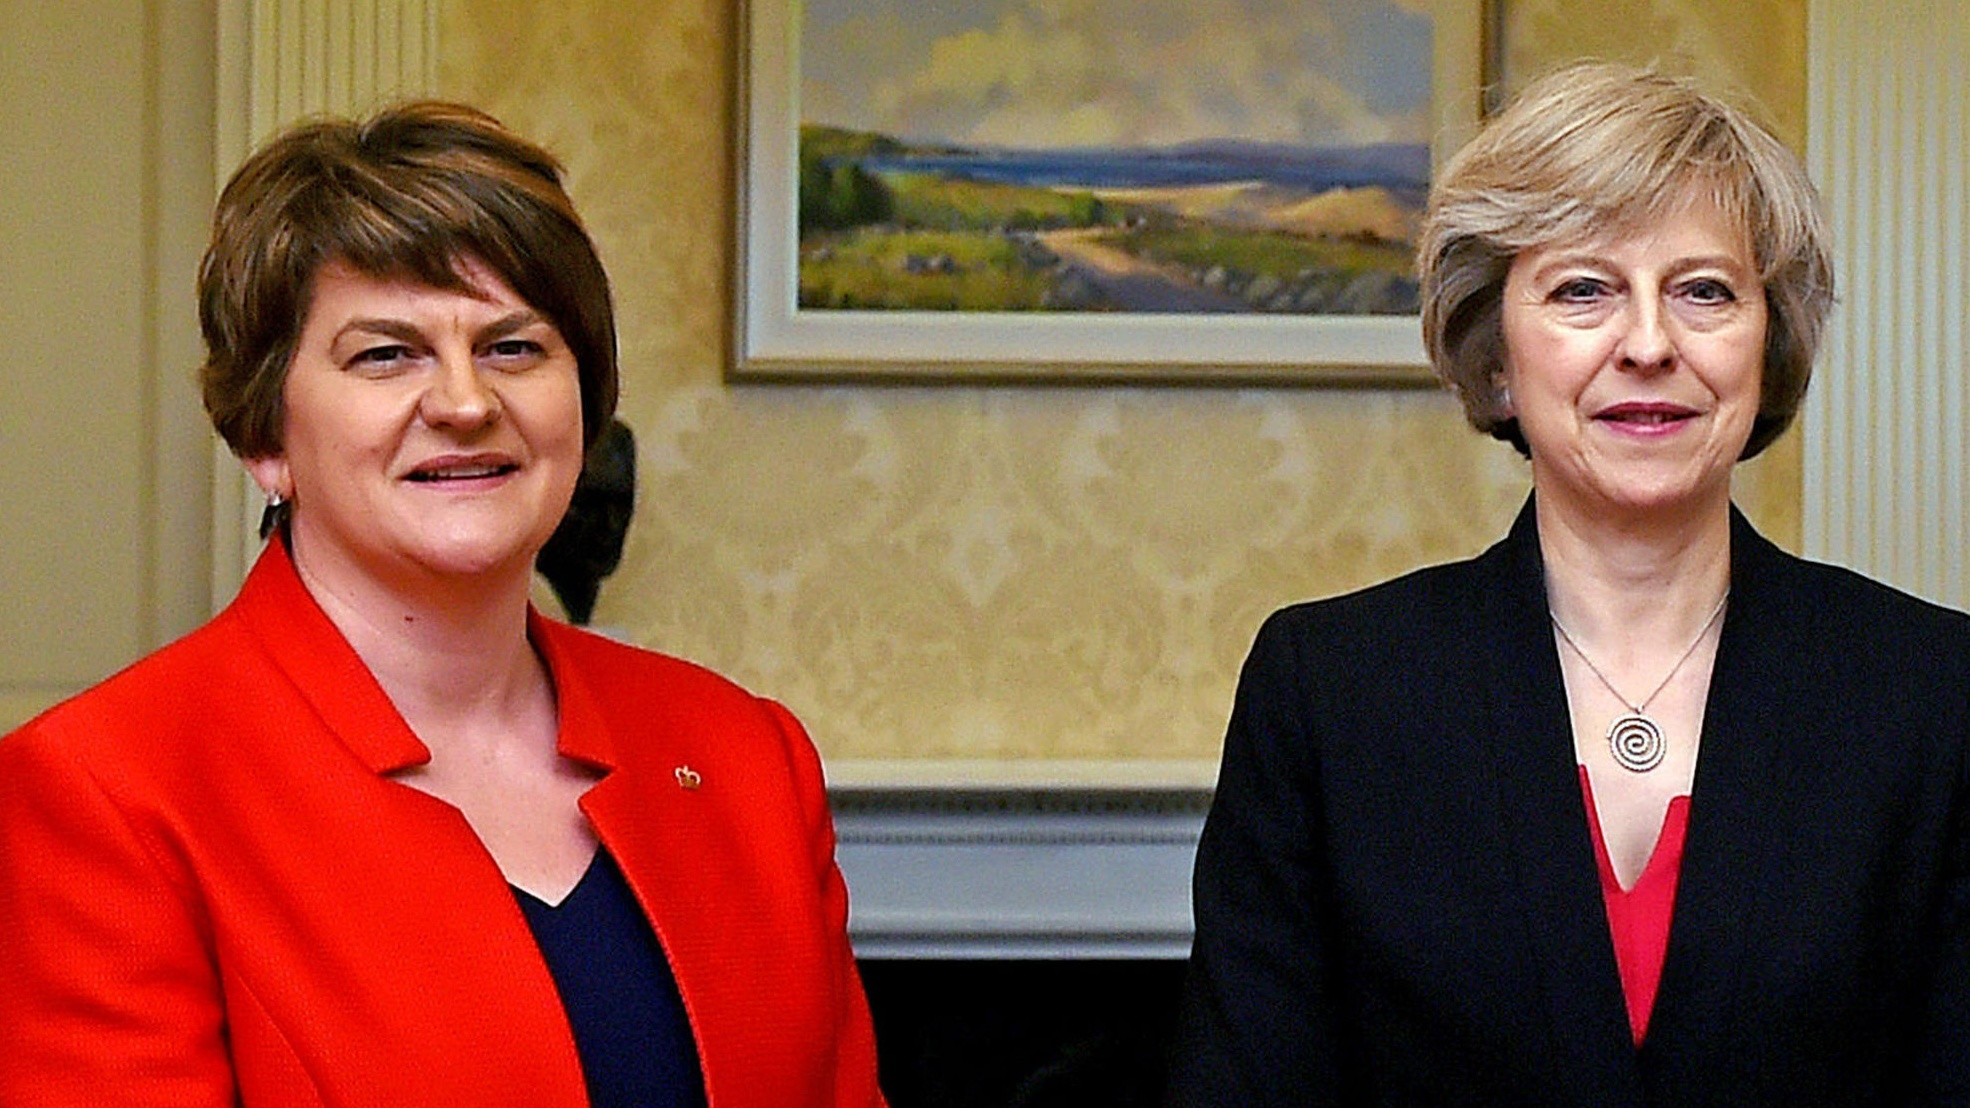 May-Northern Ireland's DUP deal thrown into confusion